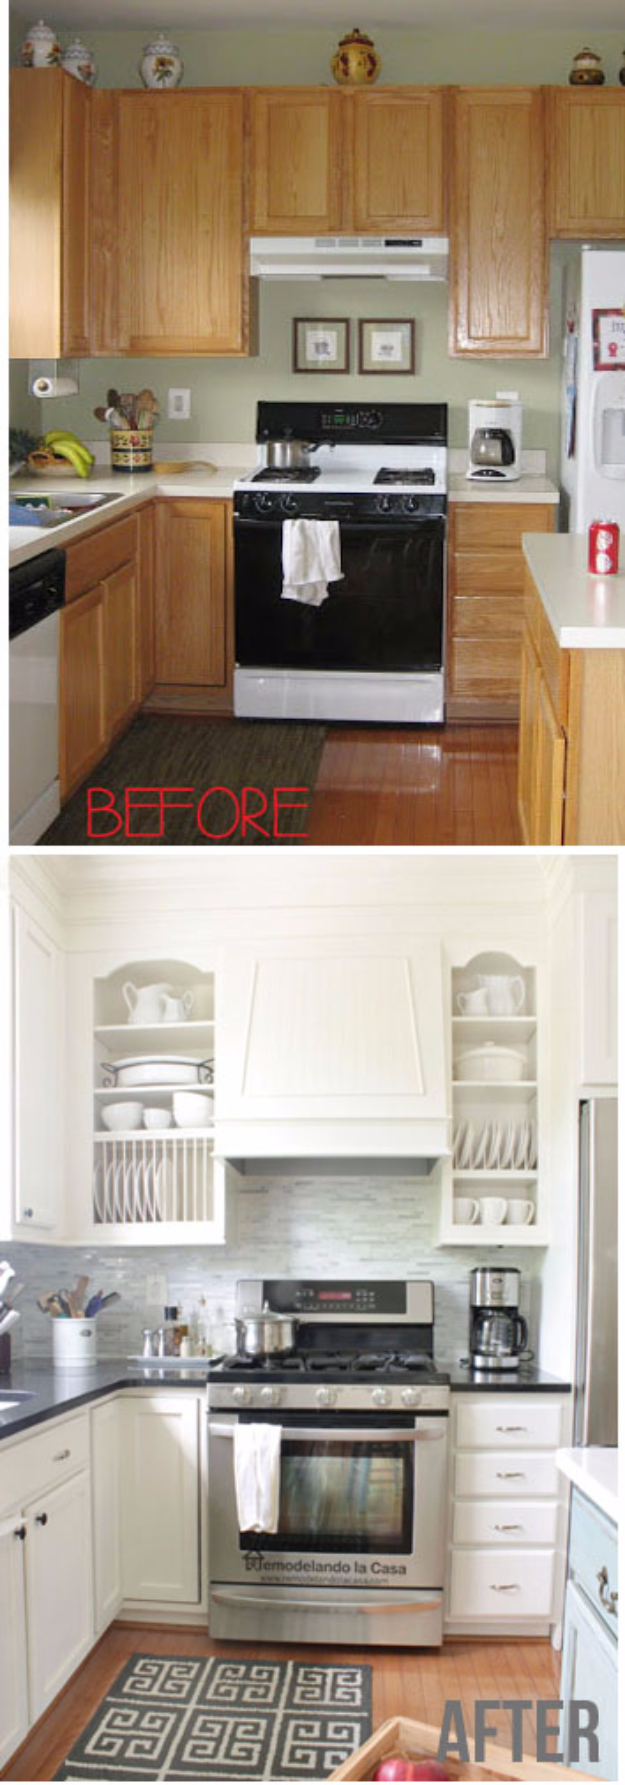 37 brilliant diy kitchen makeover ideas Kitchen Makeover Ideas